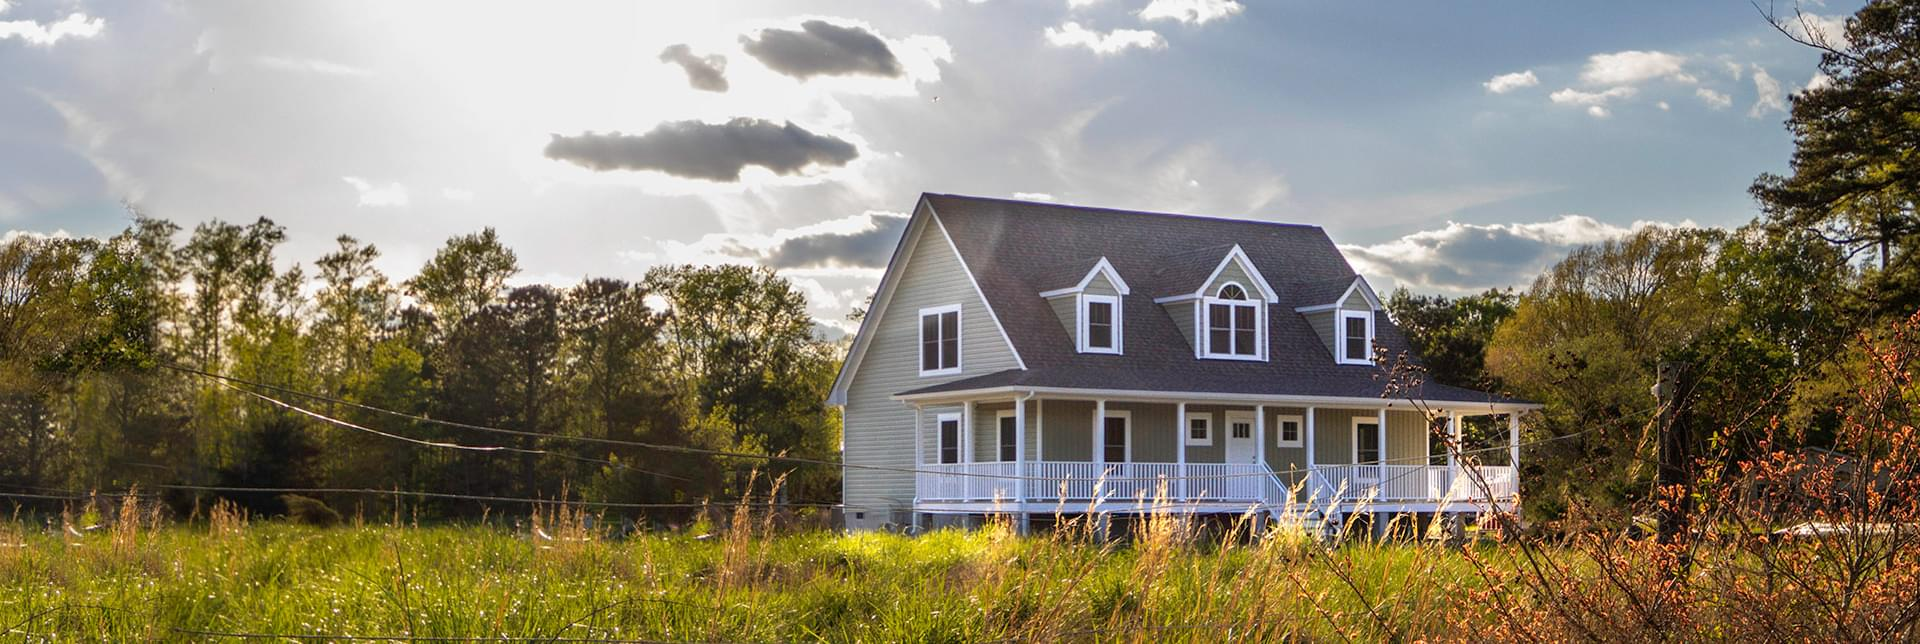 New Homes in Perquimans County NC